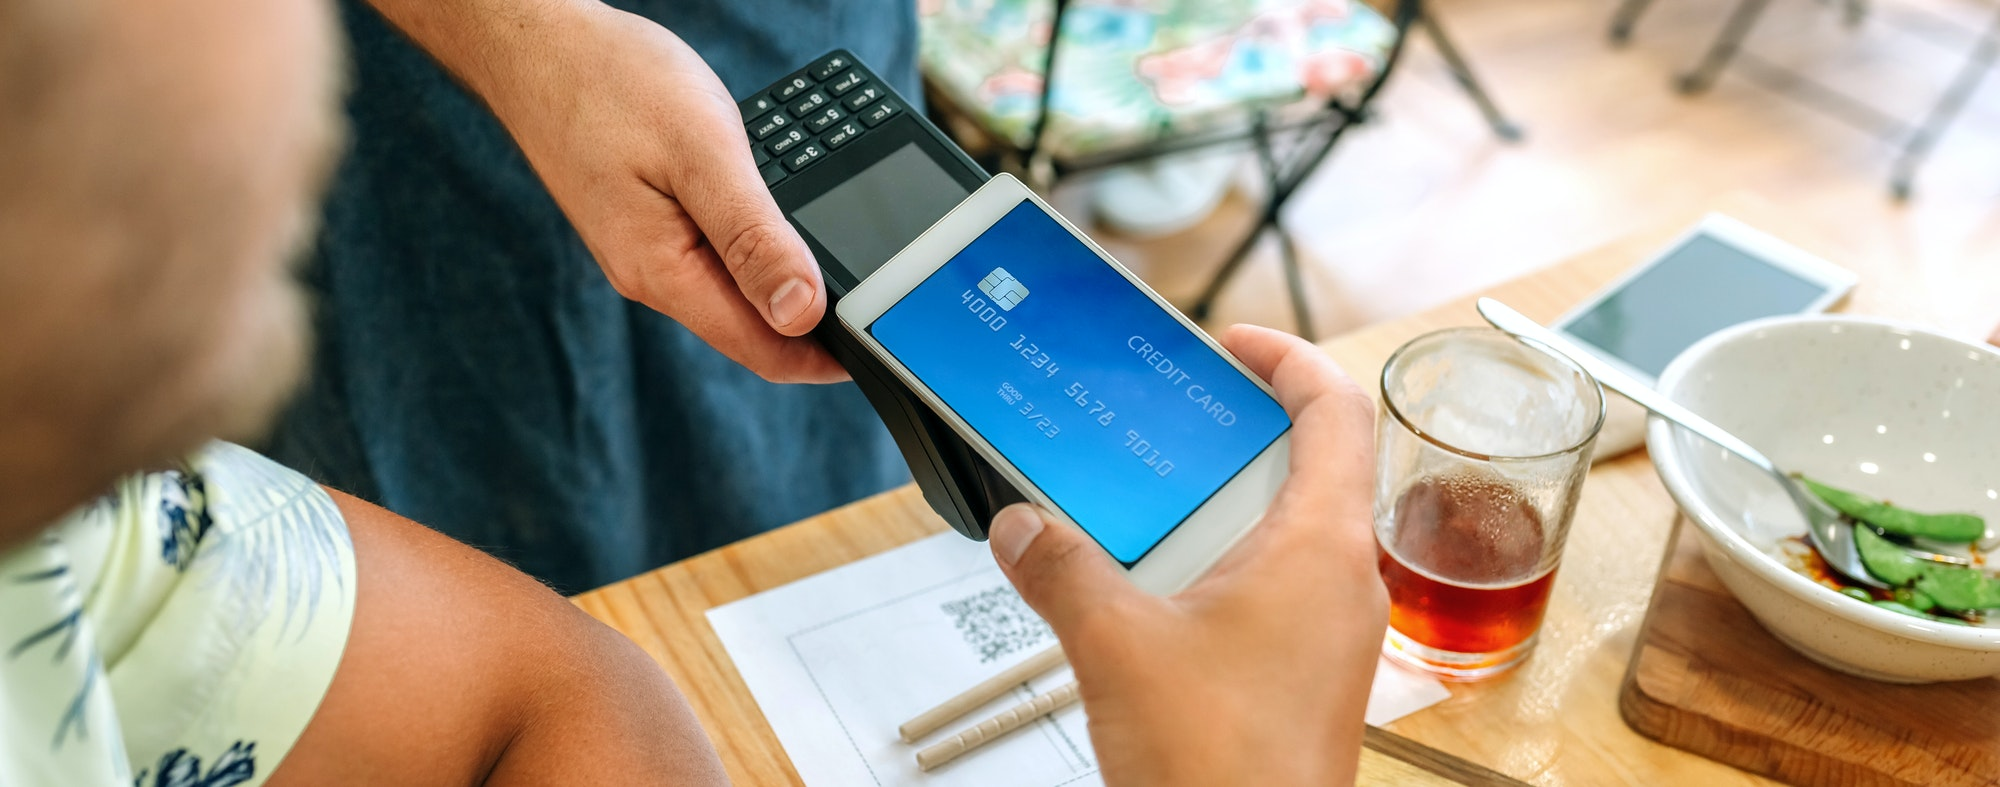 Customer paying the restaurant bill with a virtual mobile card